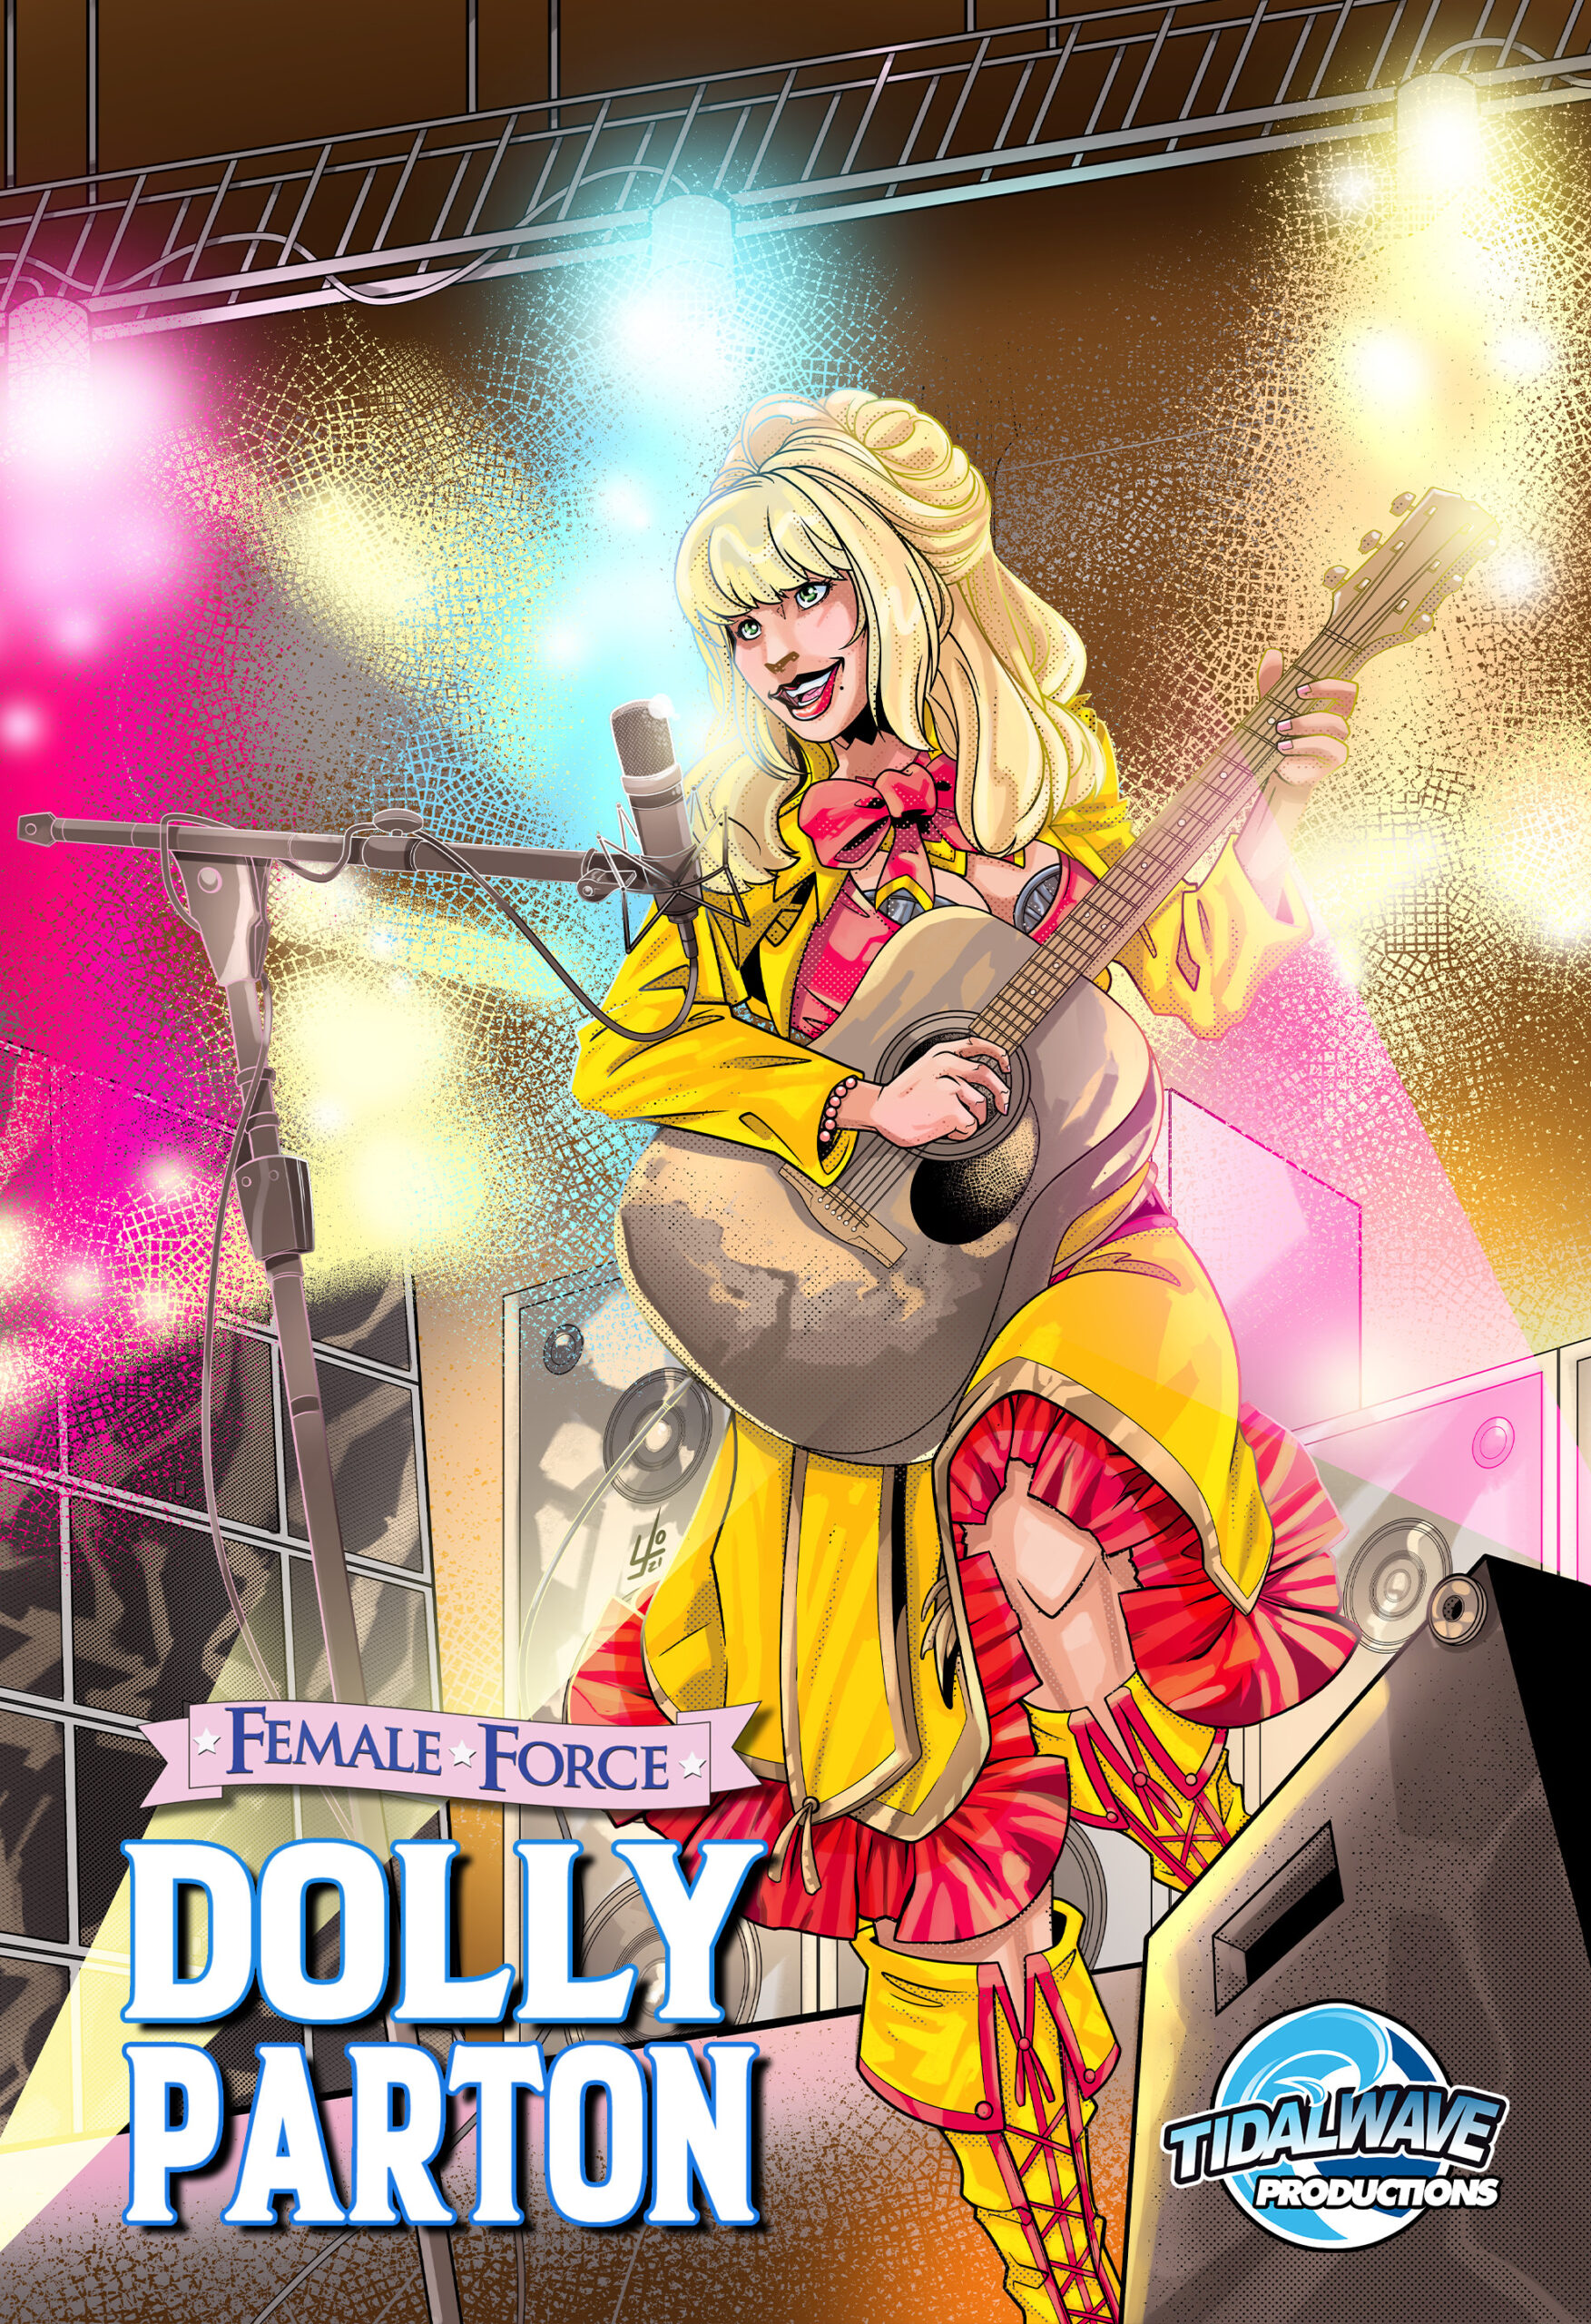 Dolly Parton gets the comic book treatment